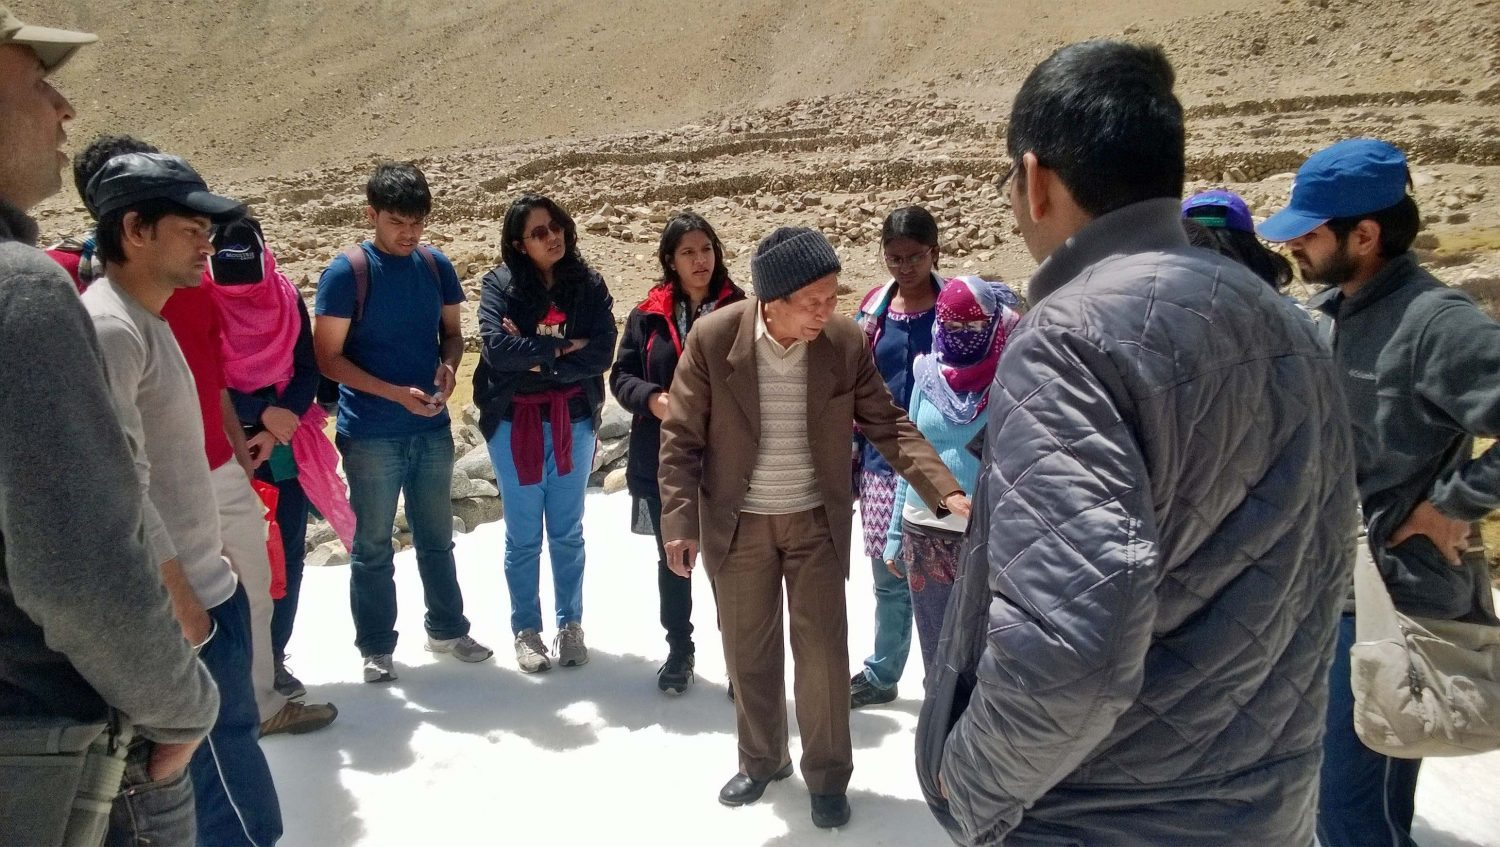 2014 Fellows During Travel Workshop To Ladakh With Padmashri Mr. Chawang Norphel - The Glacier Man